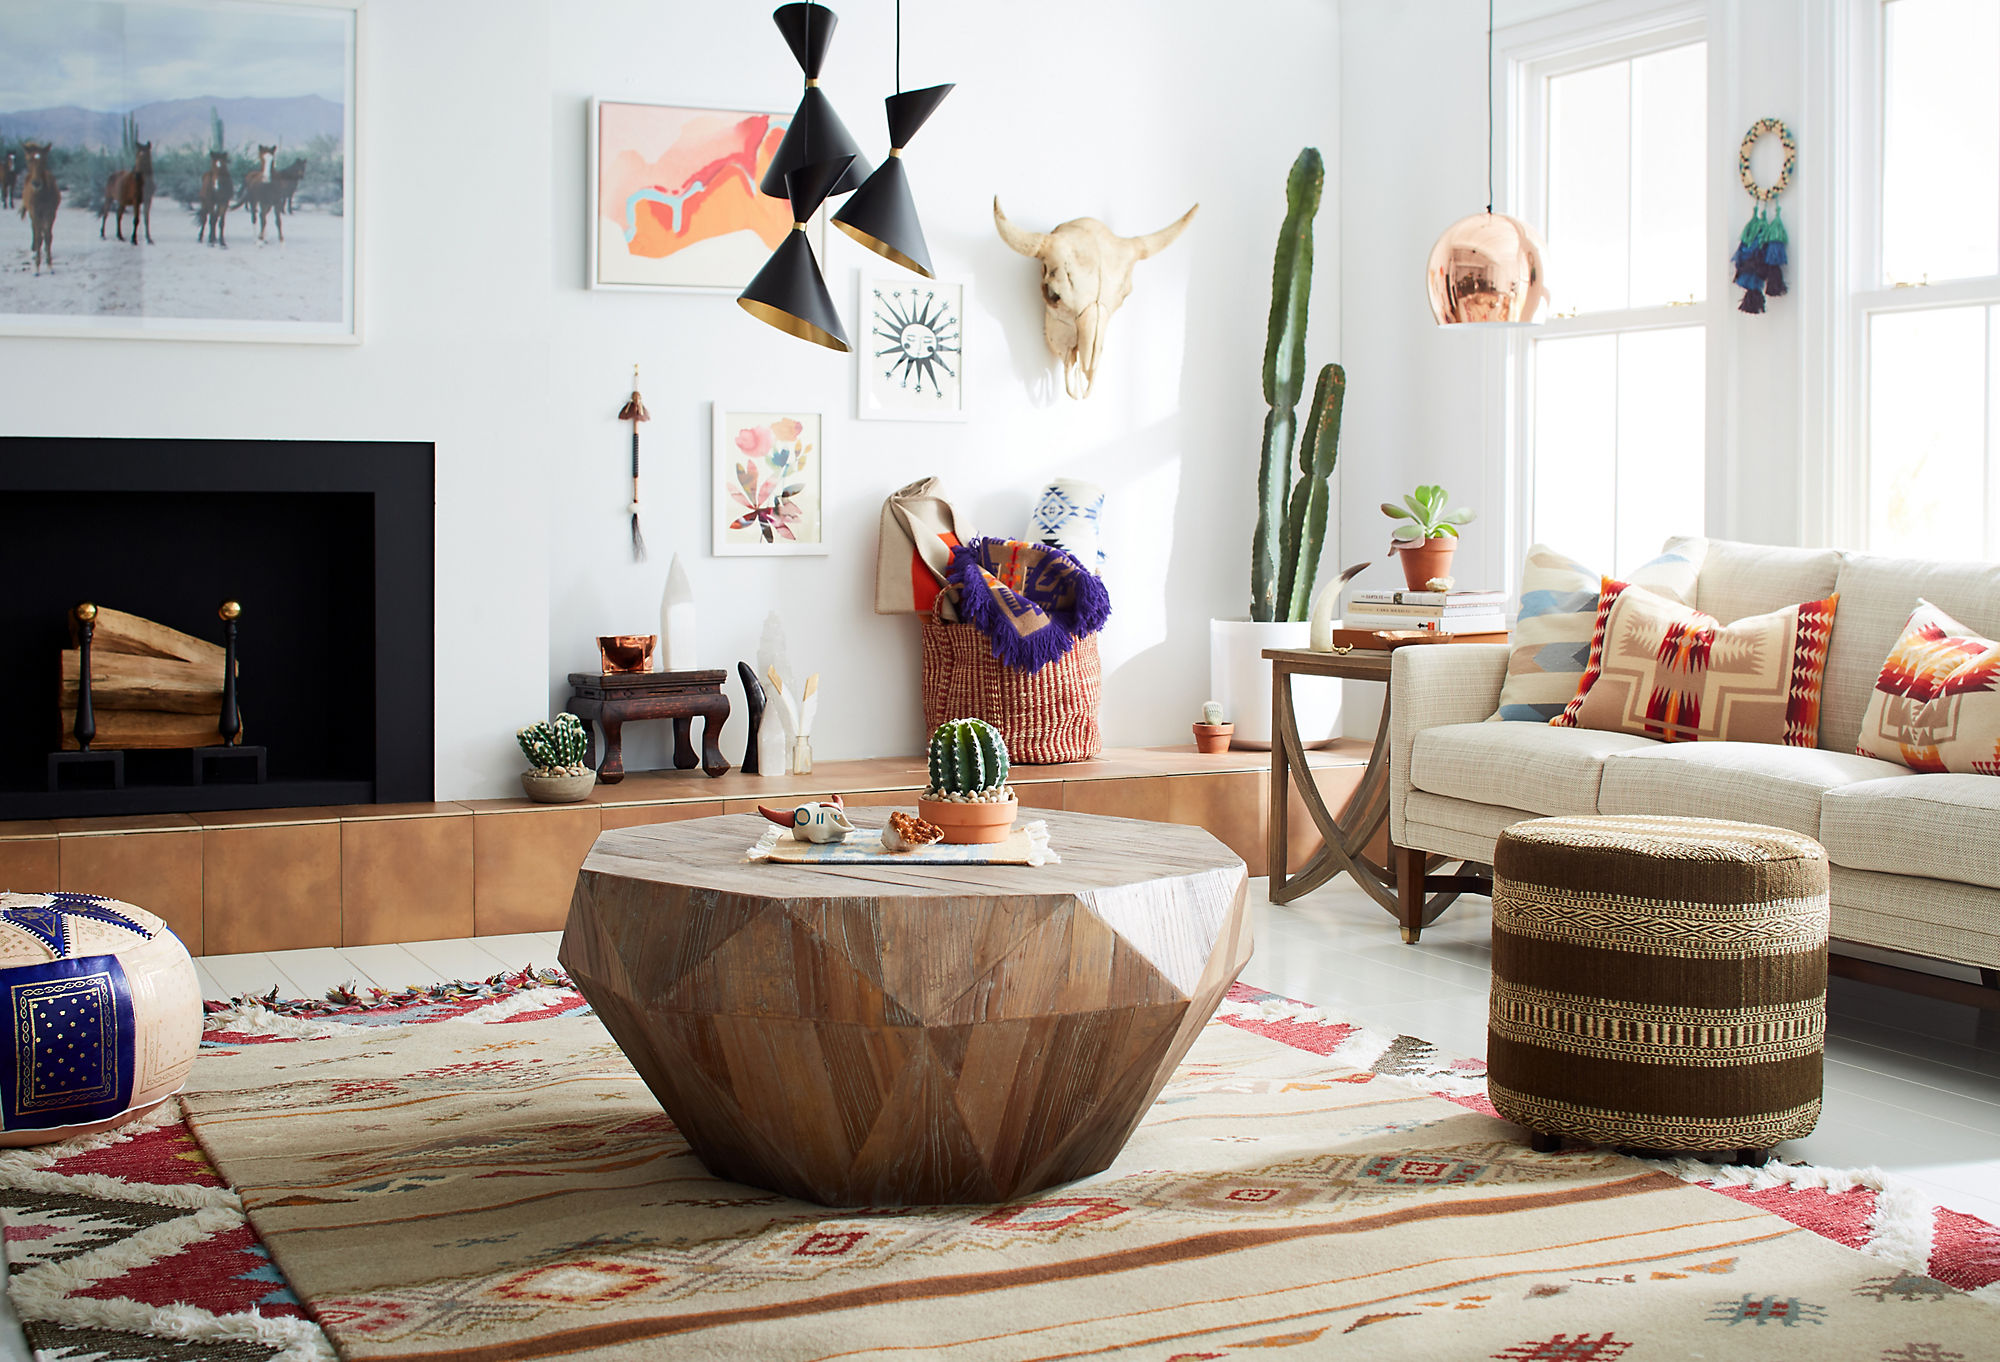 Home decor imports canada home decor for Home decor imports